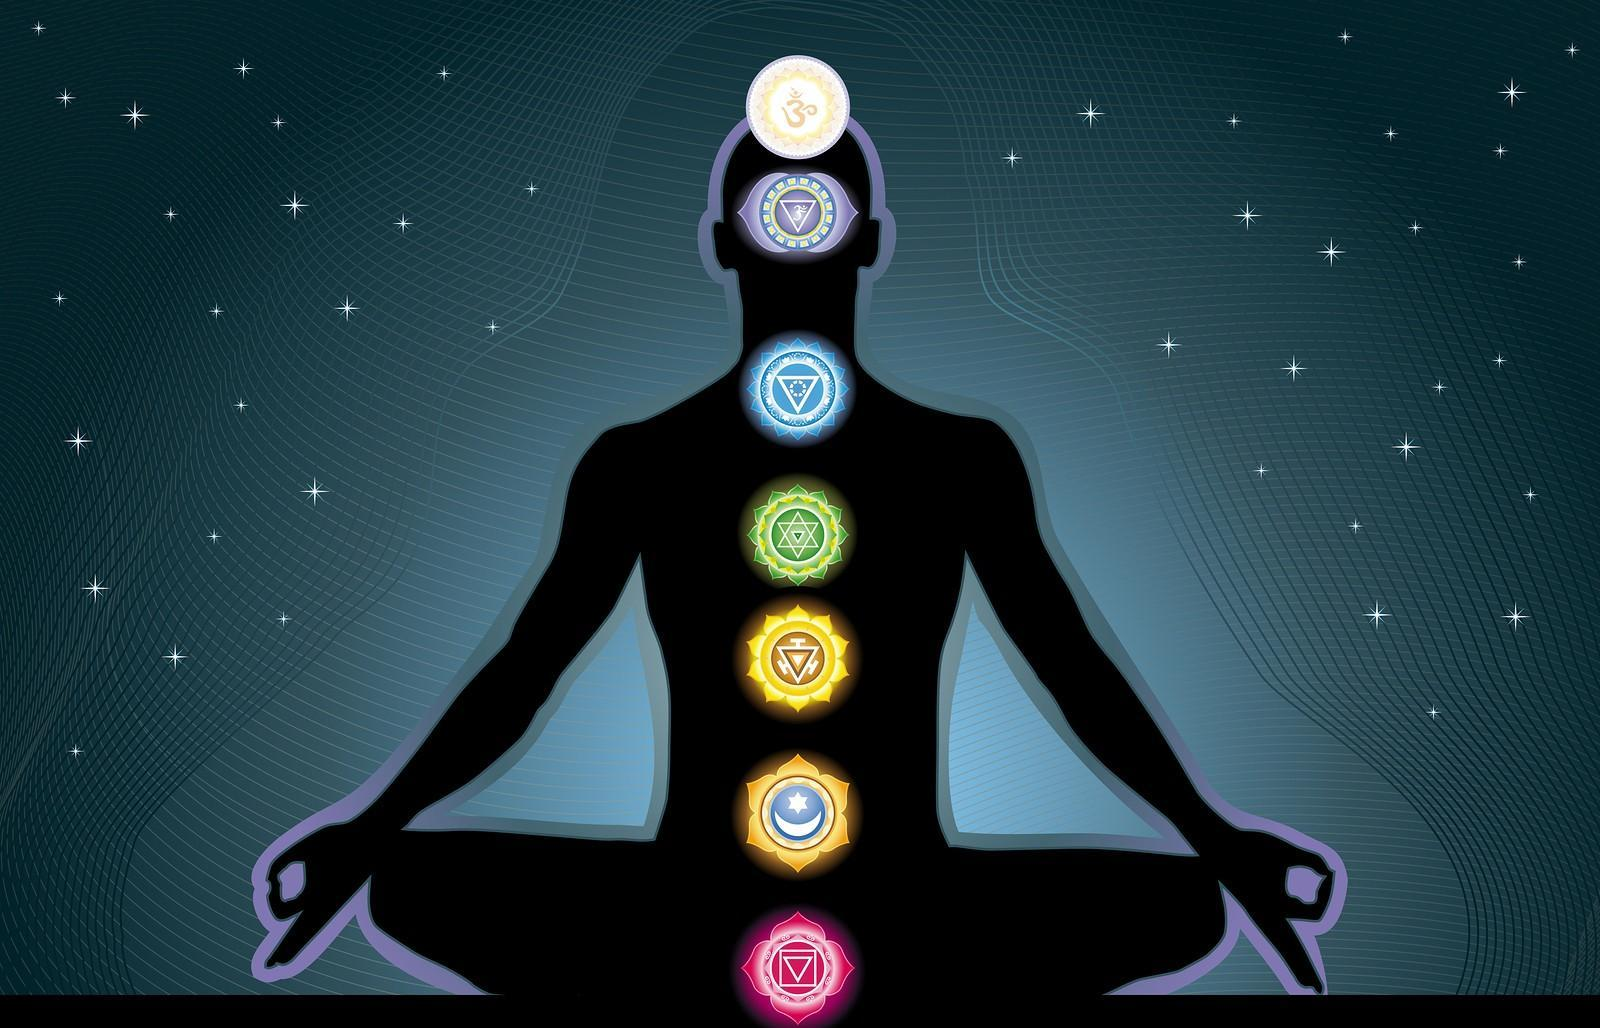 What one is your out of the seven chakra types?